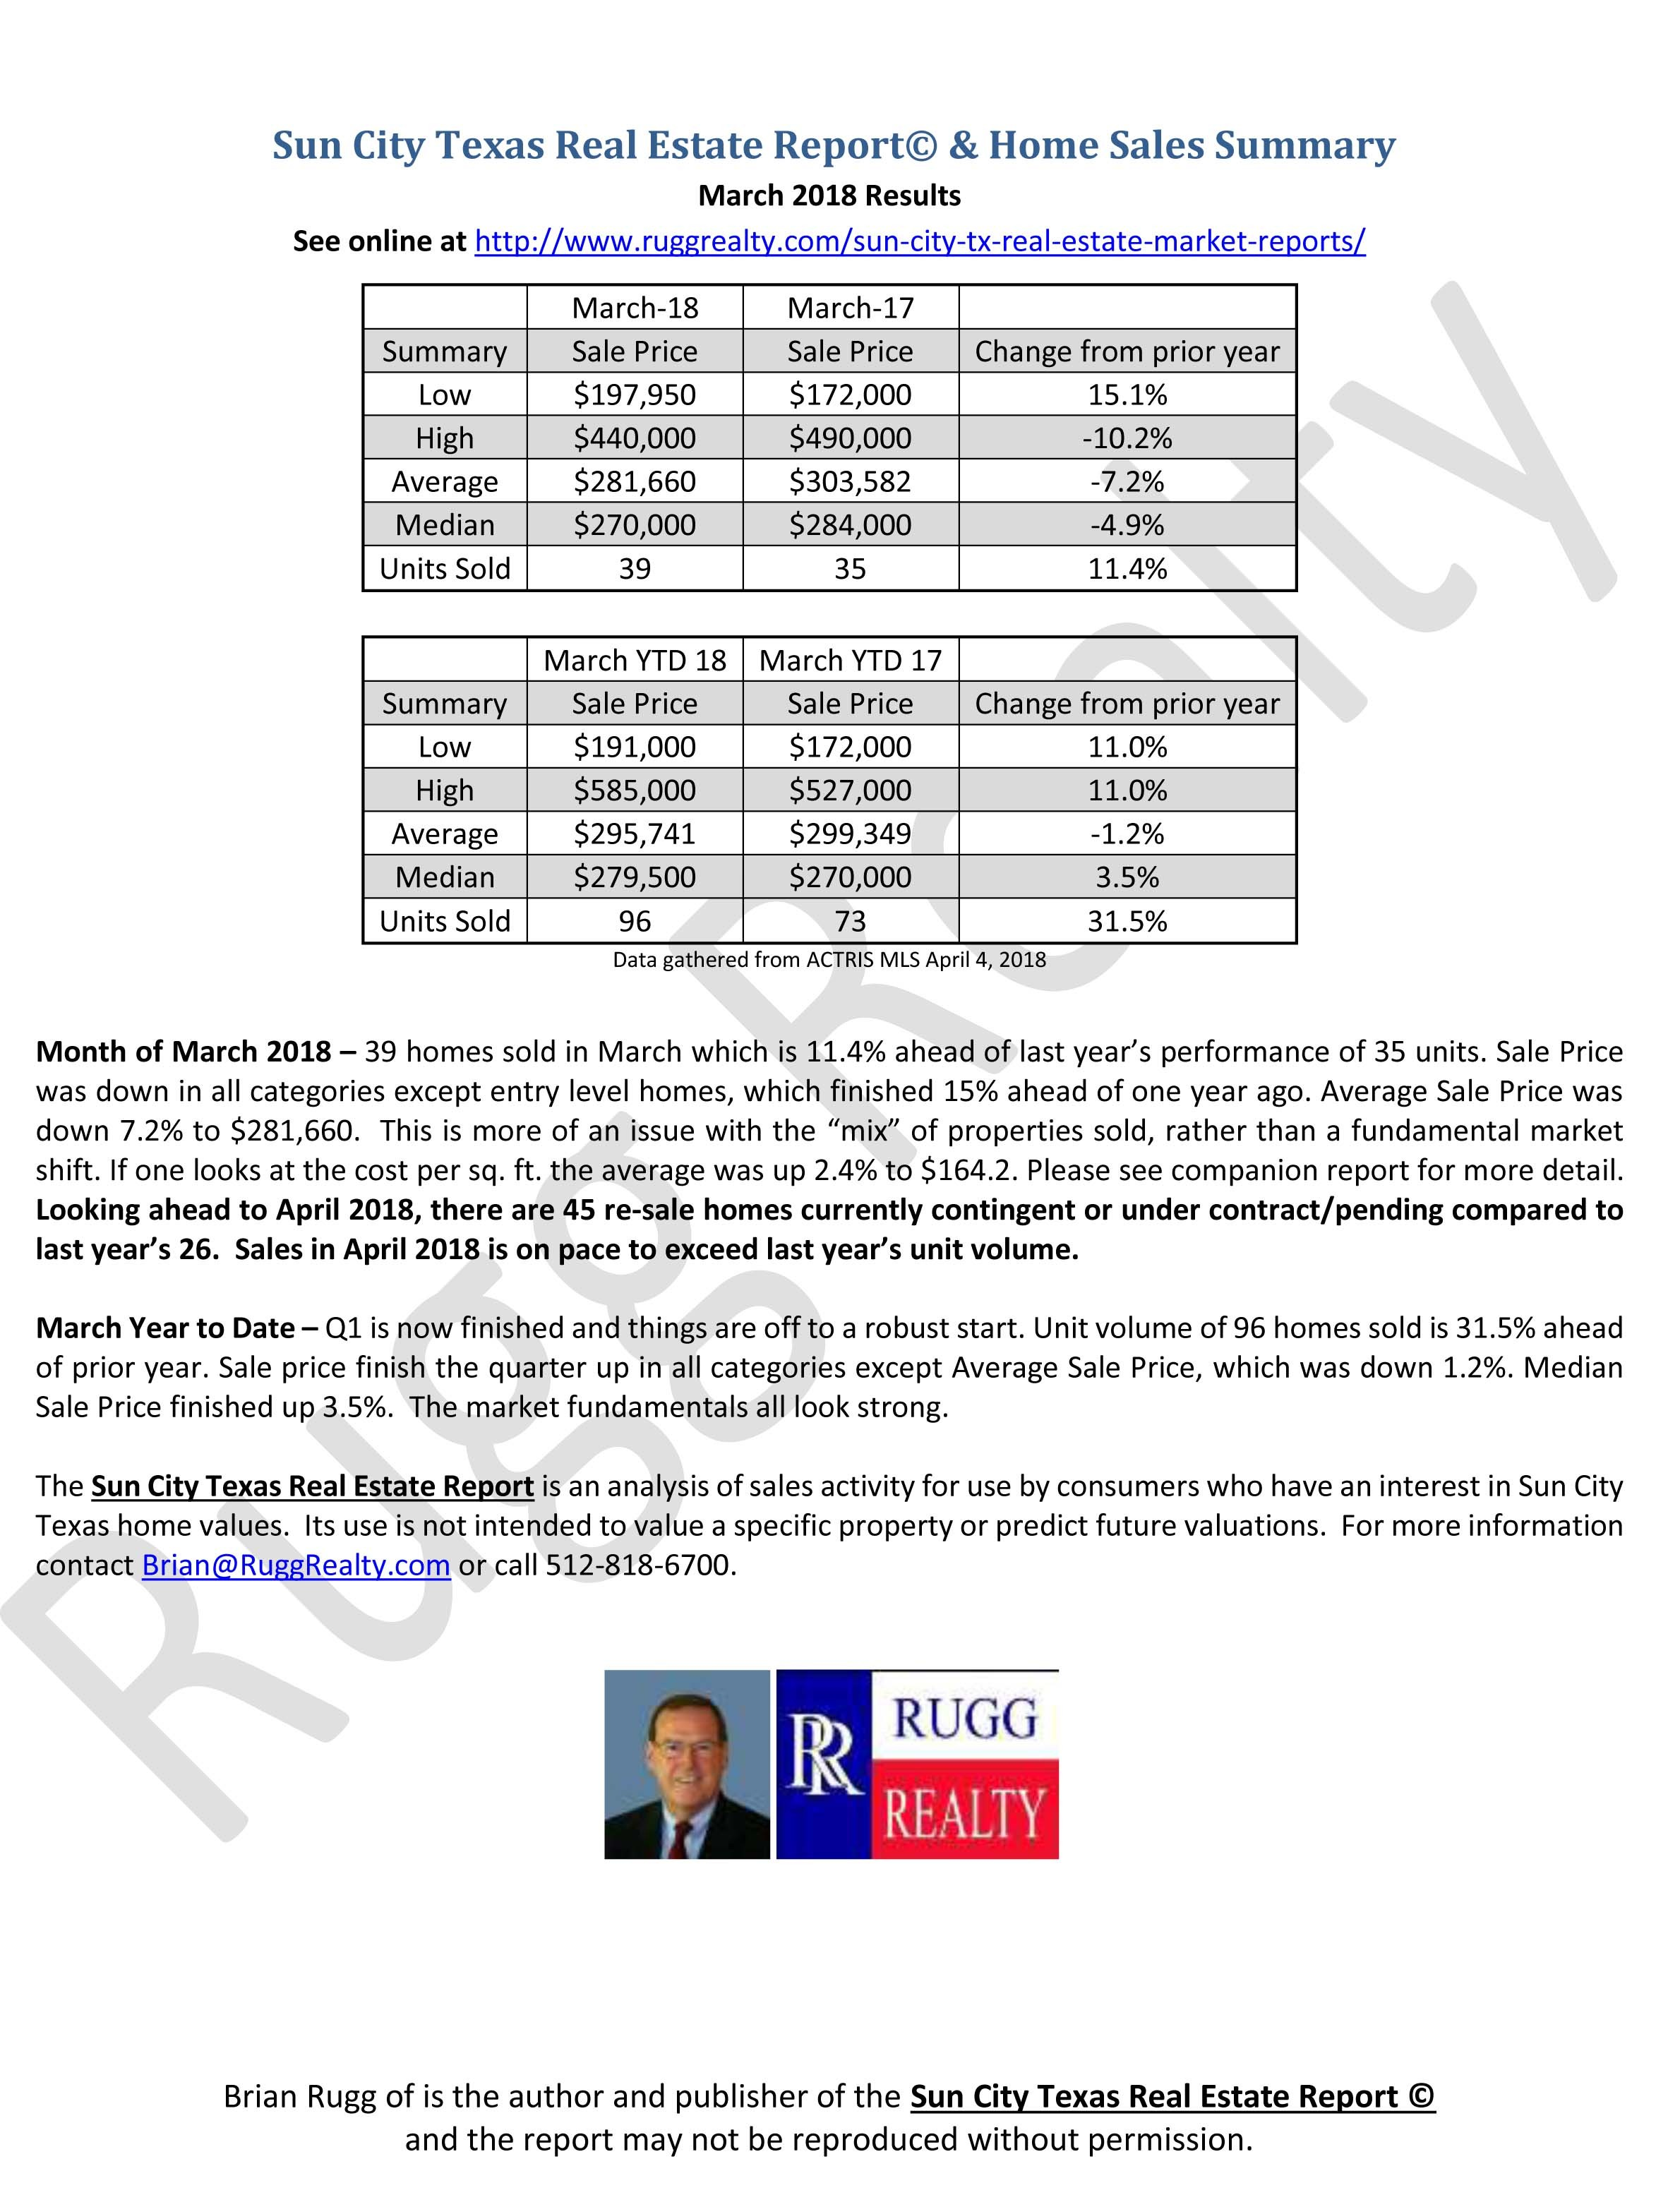 March '18 Sun City Texas Real Estate Report & Home Sales Summary